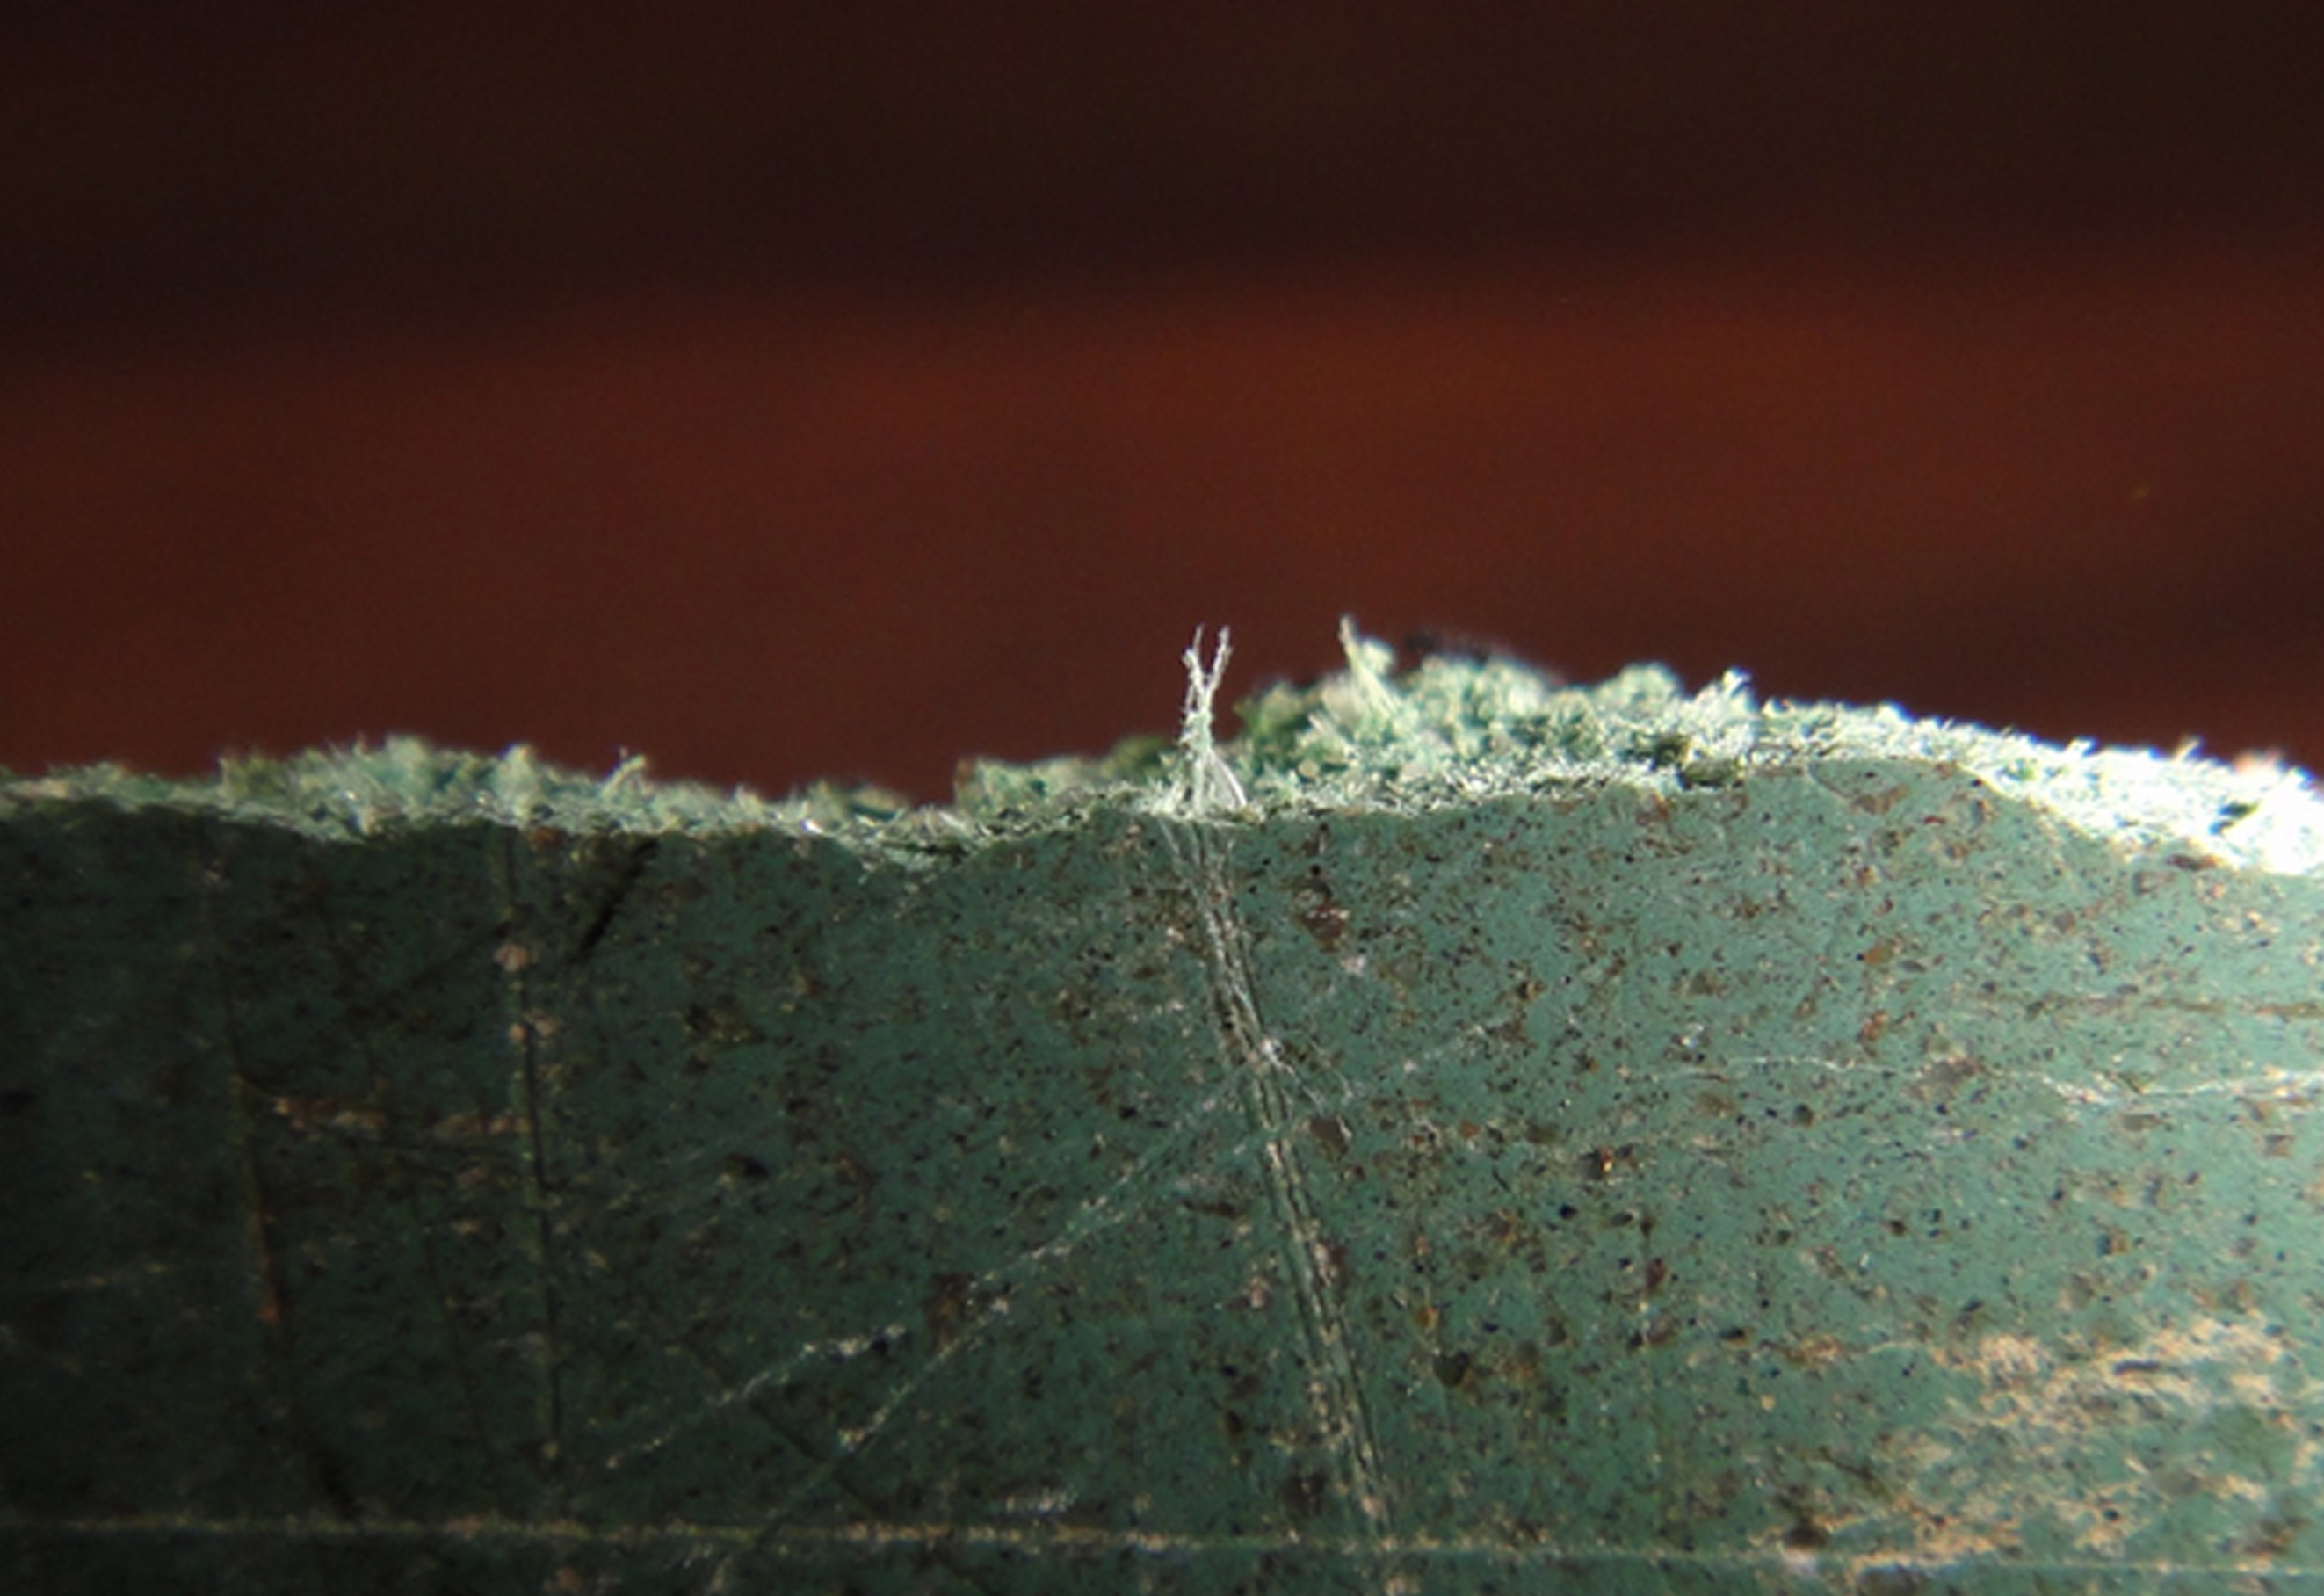 Asbestos Awareness What It Is and Where It Can Be Found